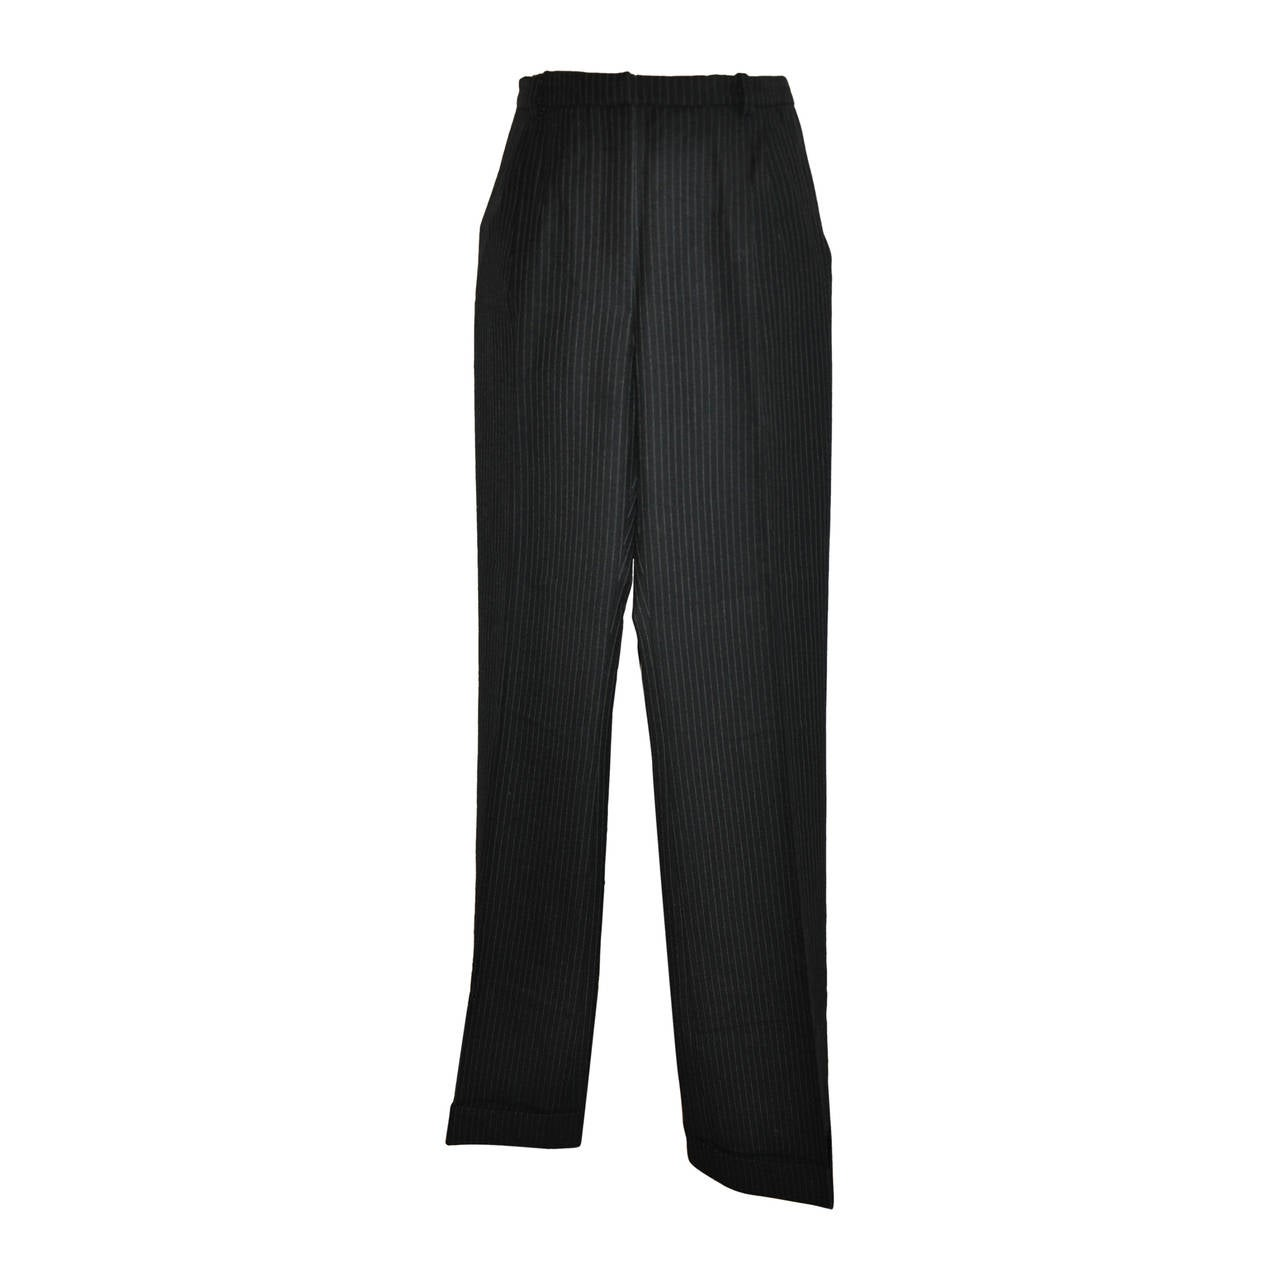 Balenciaga Black Wool Pinstripe Trousers